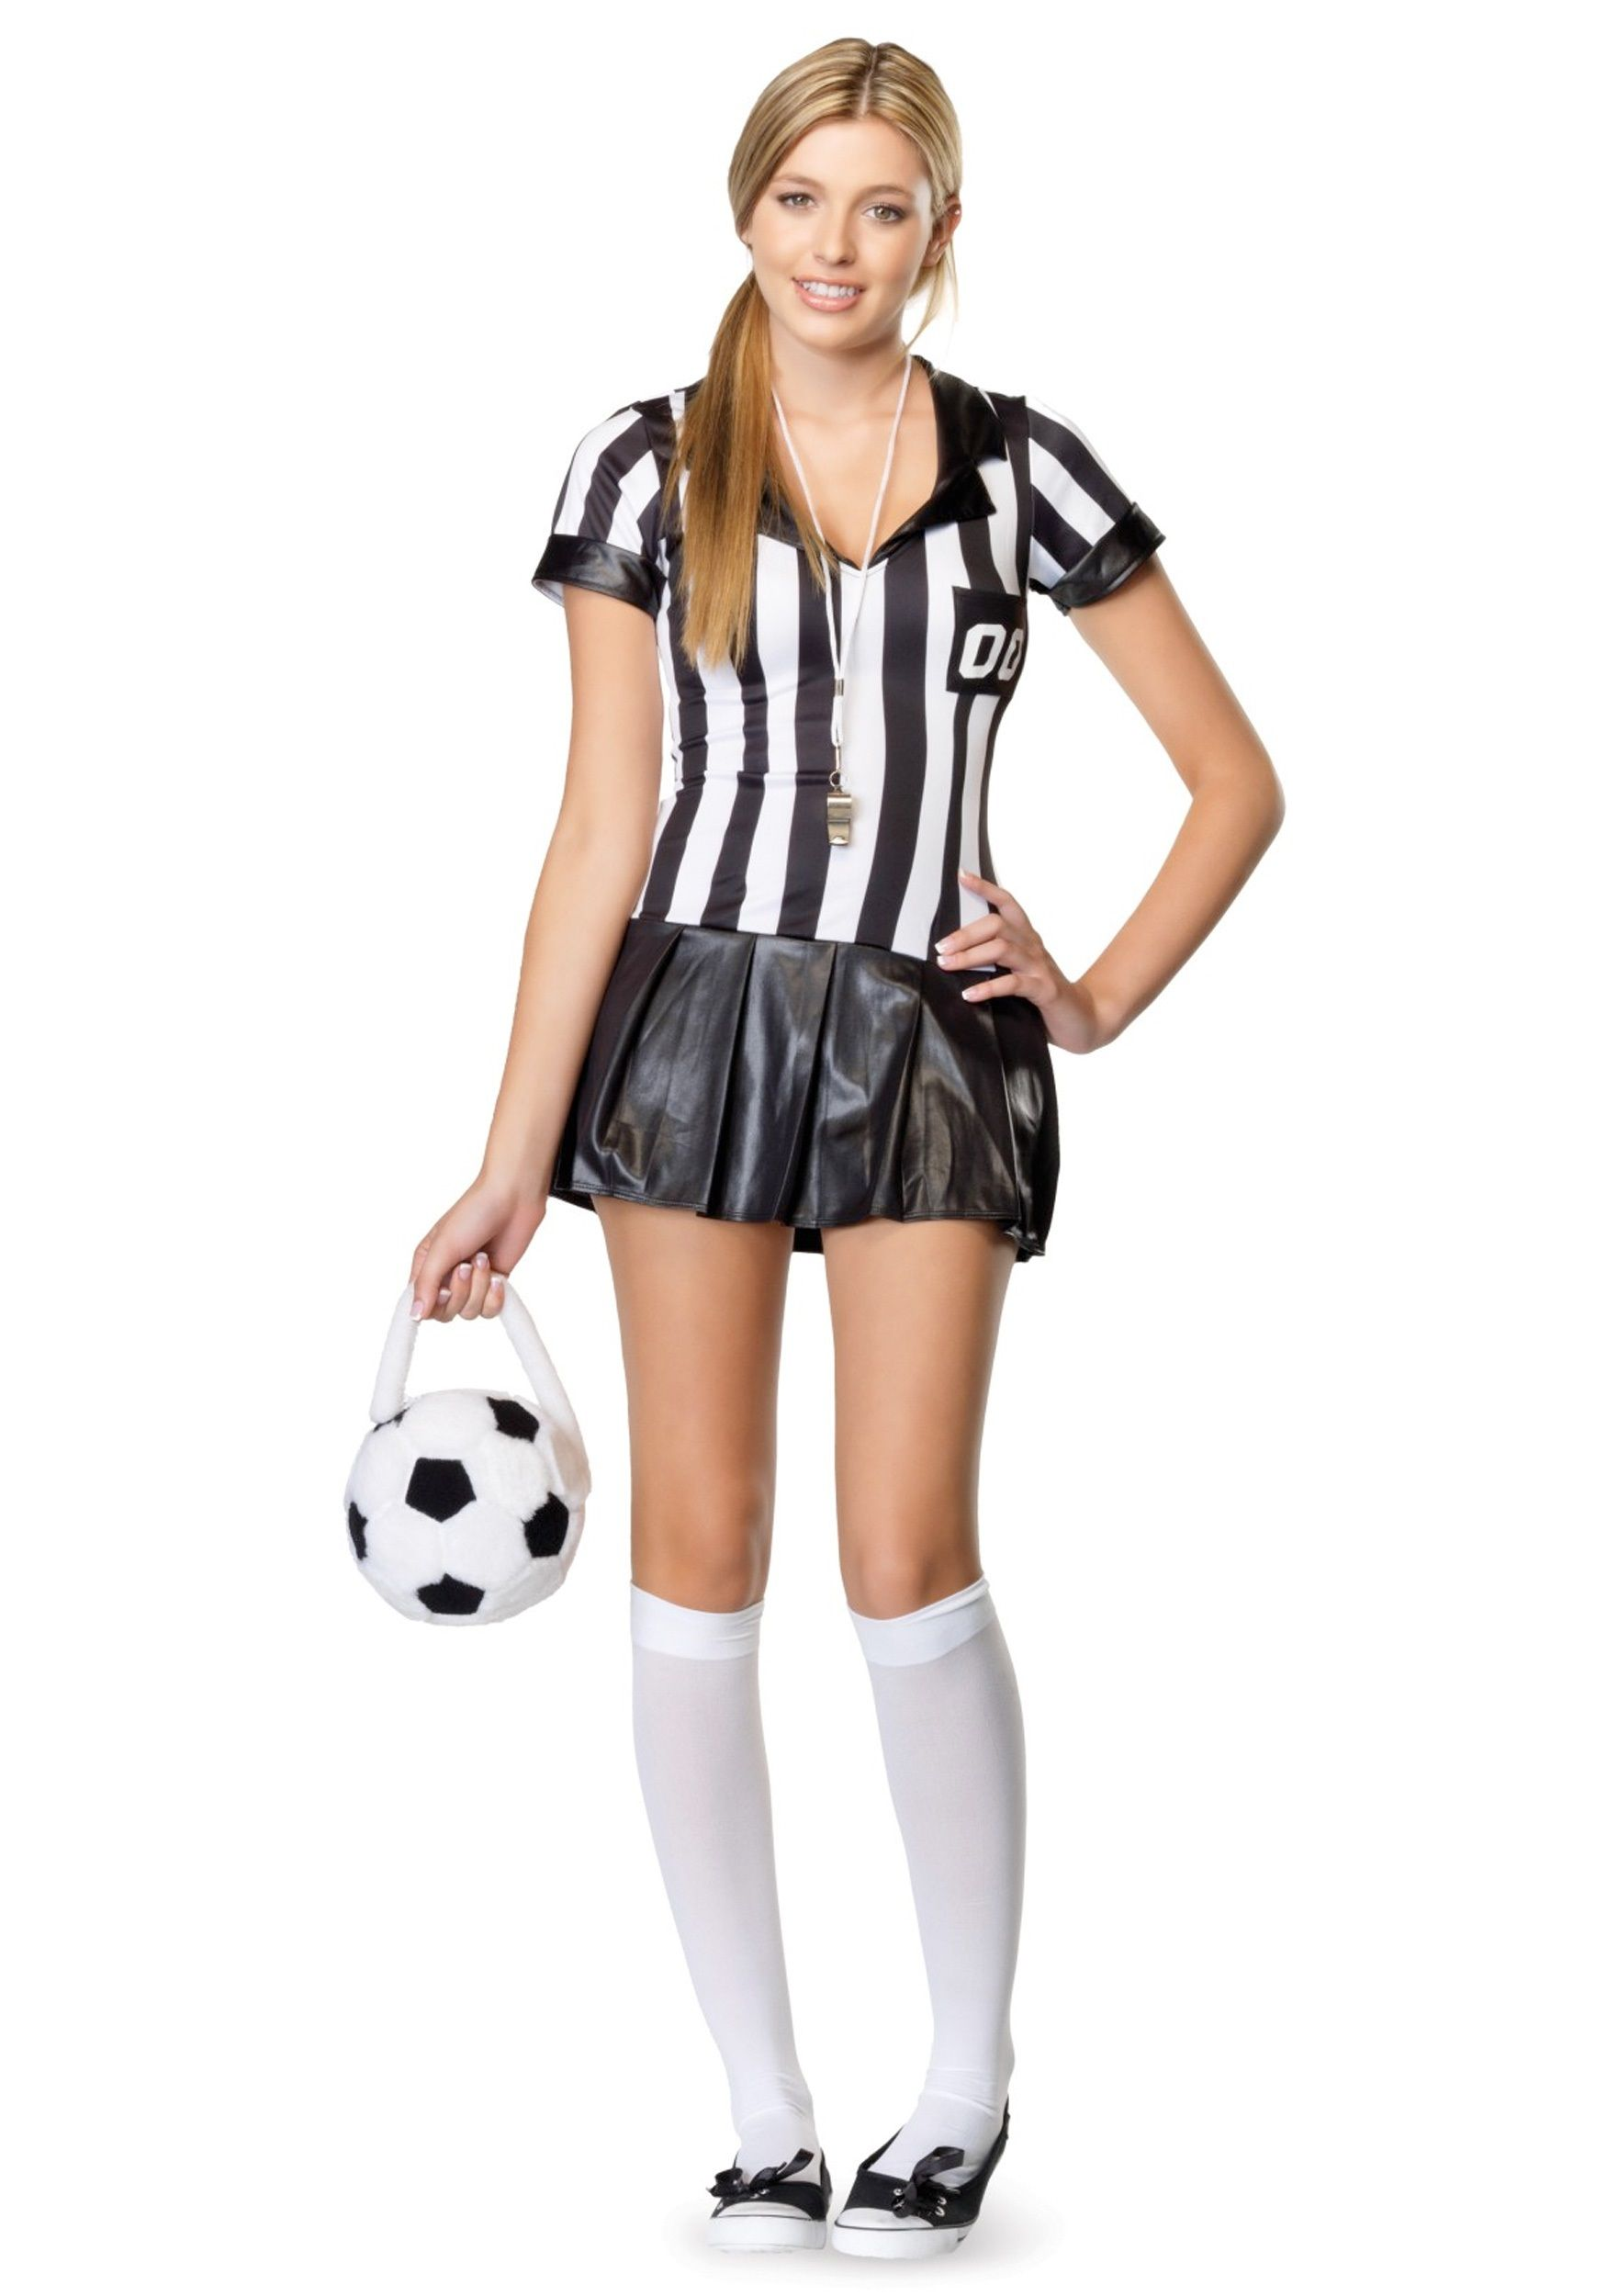 cuteteencostumes home costume ideas sports costumes referee costumes girls teen referee - Girls Teen Halloween Costumes